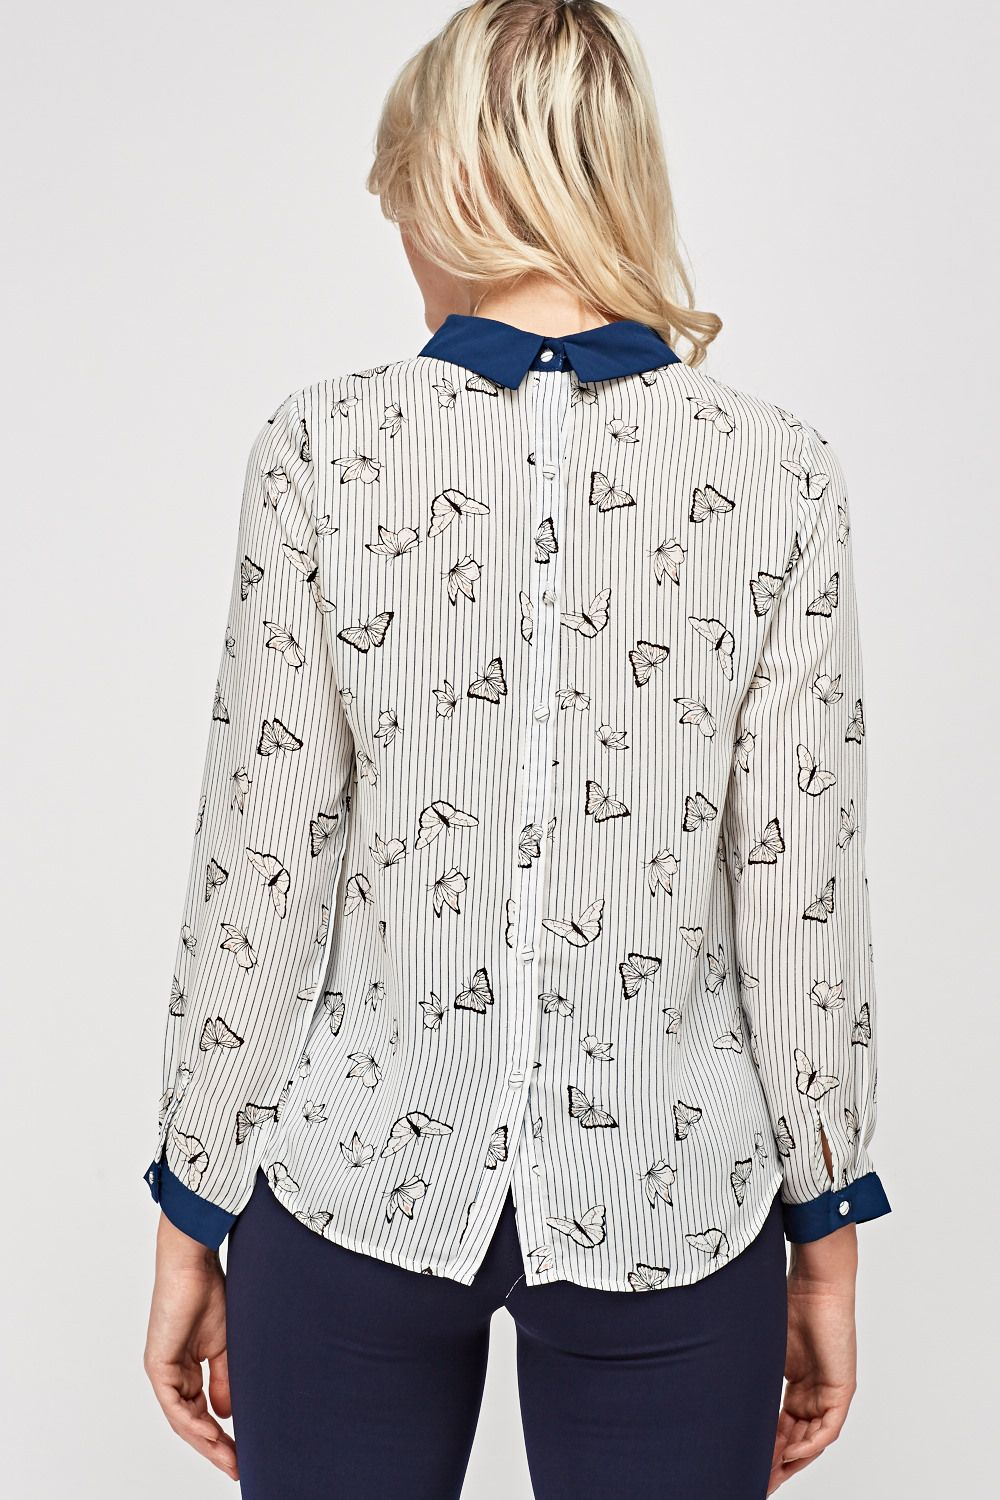 c91d24b106 Button Back Printed Top - White Multi - Just £5